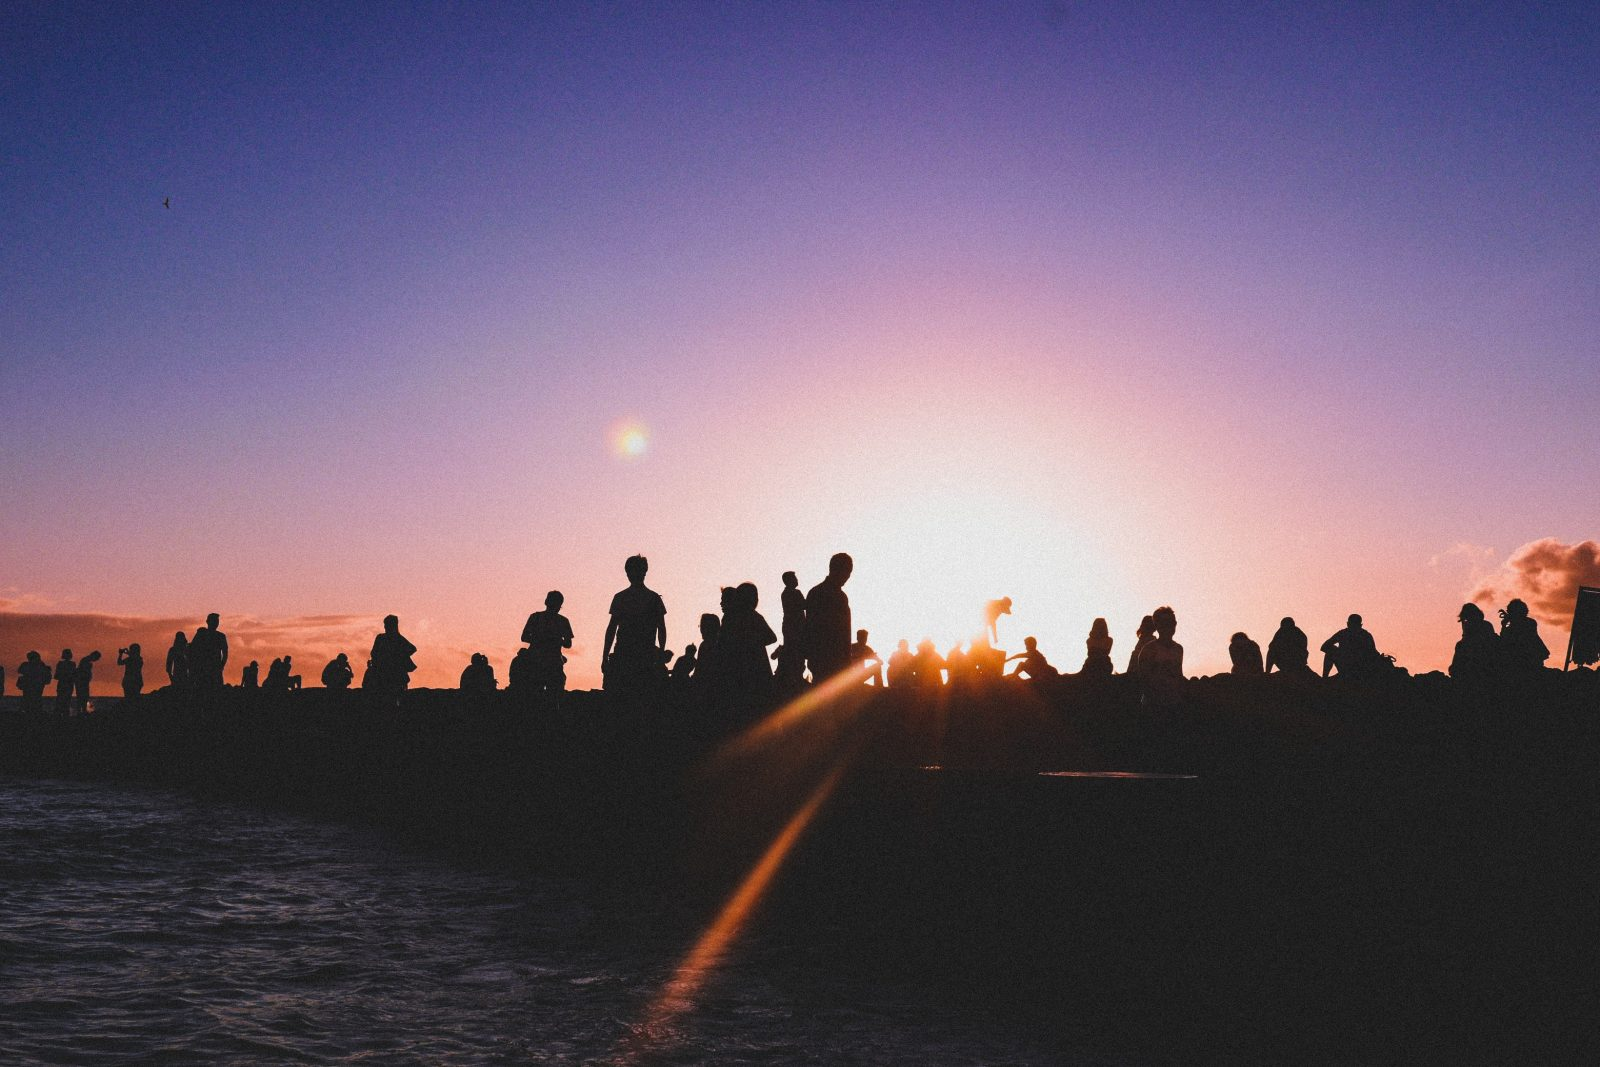 A crowd at sunset